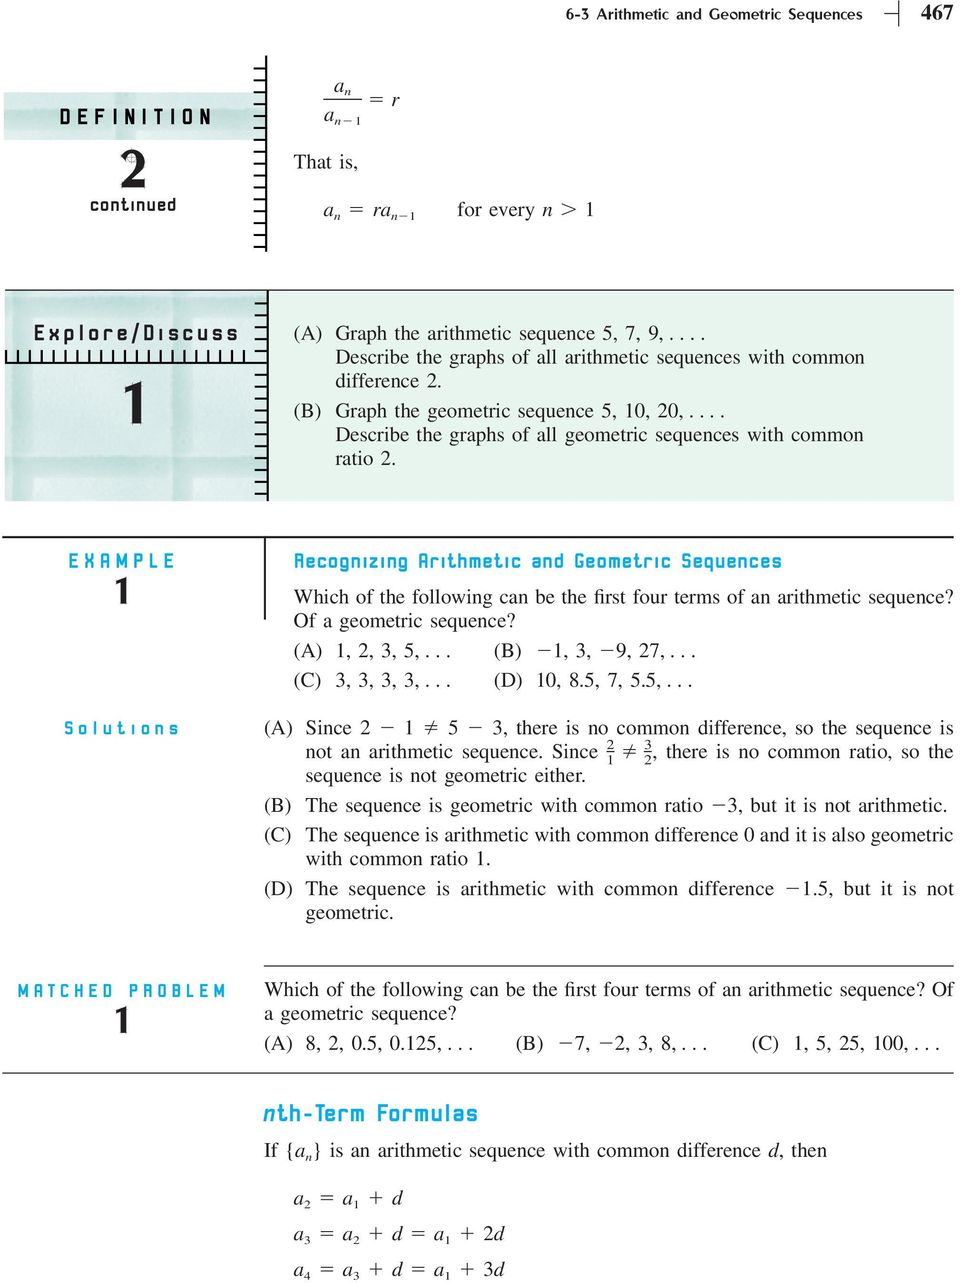 hight resolution of Section 6-3 Arithmetic and Geometric Sequences - PDF Free Download